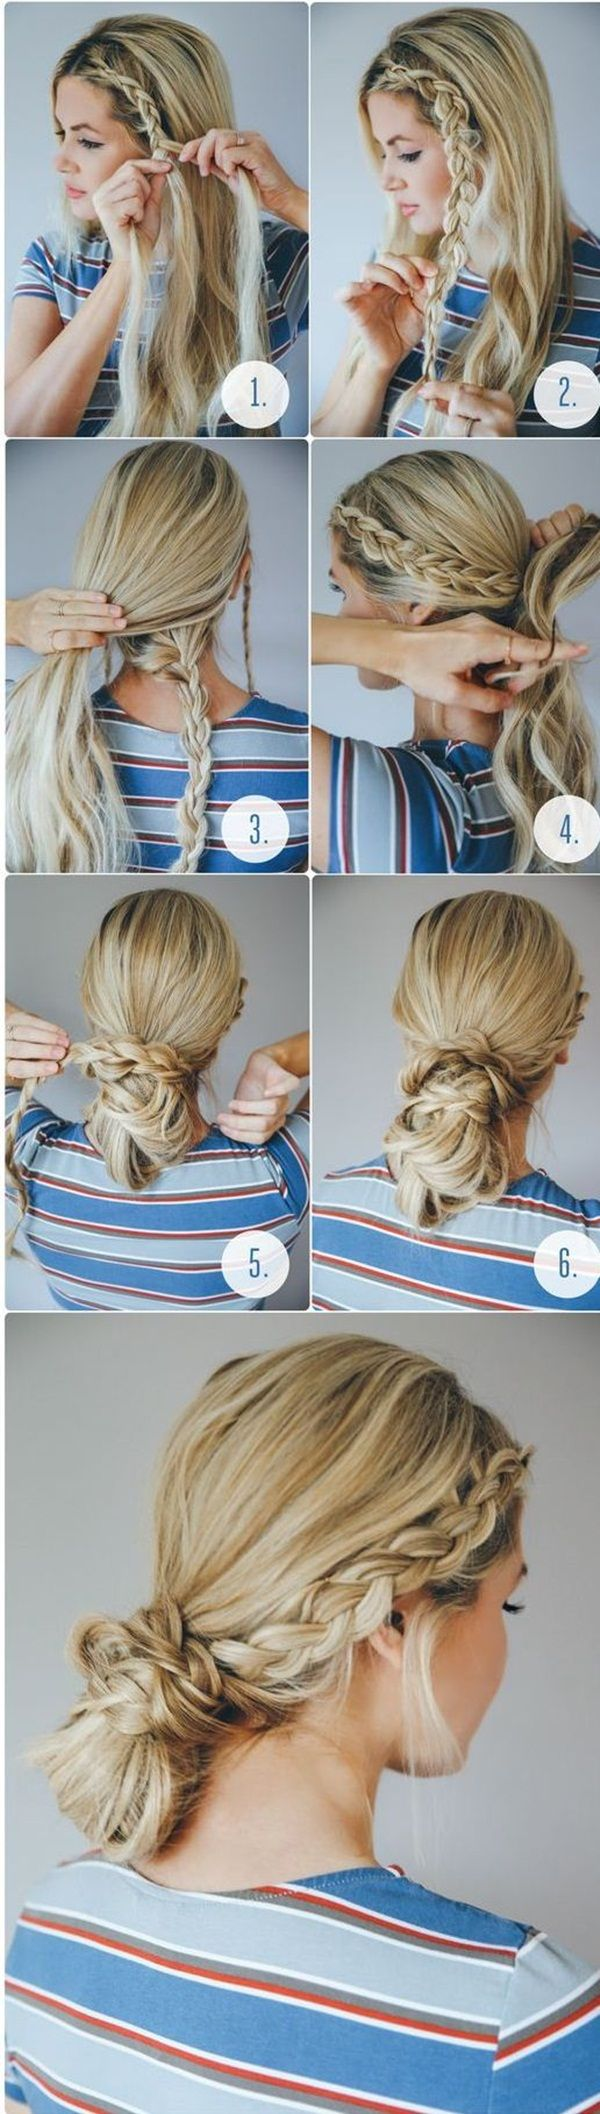 40 Easy Hairstyles for Schools to Try in 2016 | Long hair ...